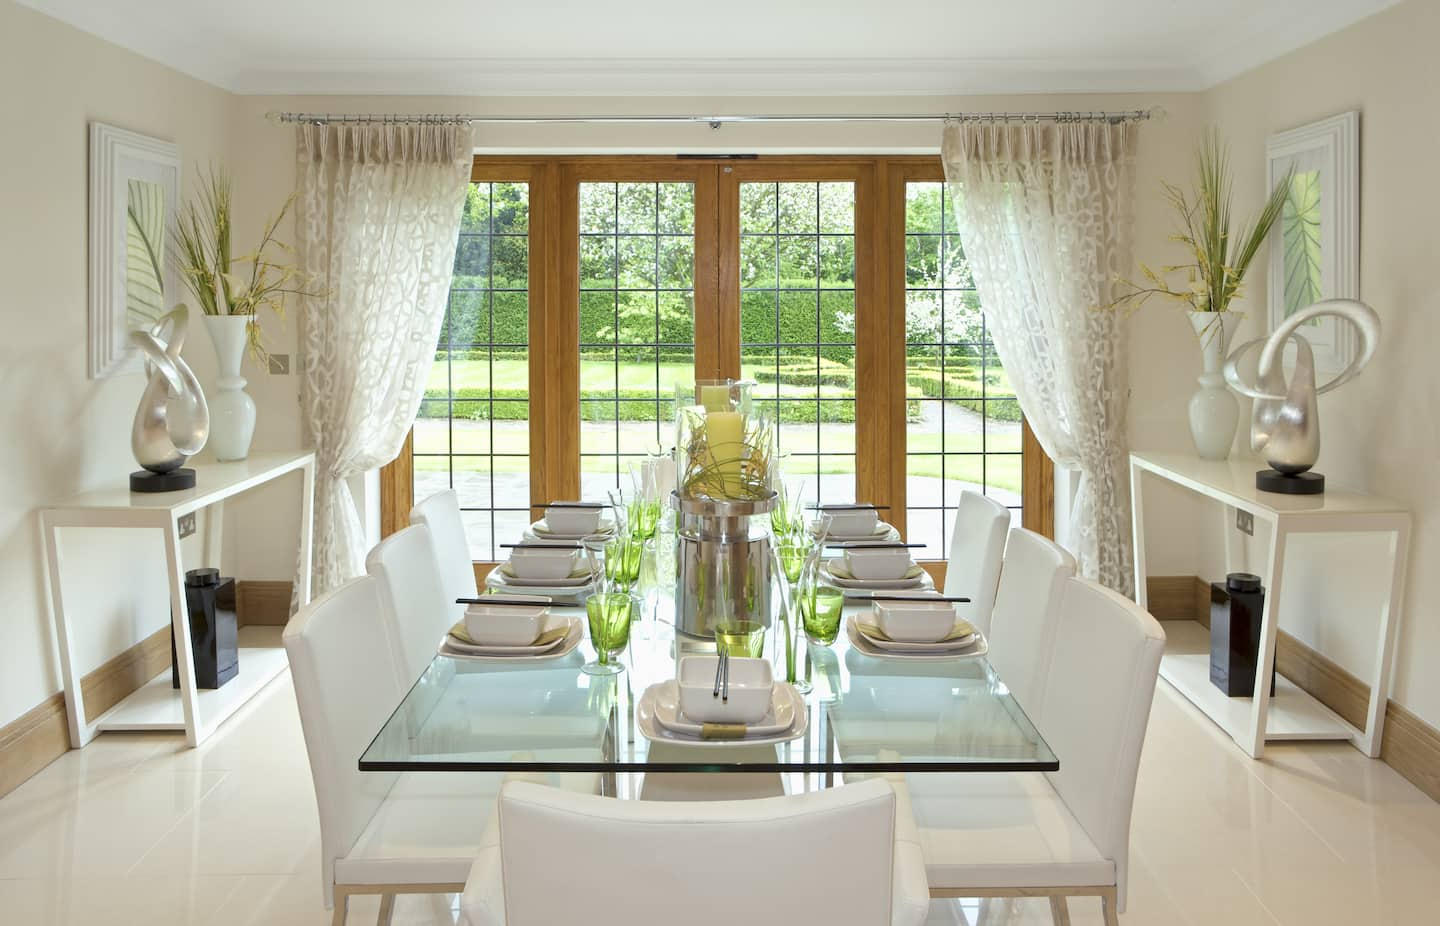 Contemporary Formal Dining Room With White Chairs, Glass Table, Garden View  Through Glass Doors Part 38